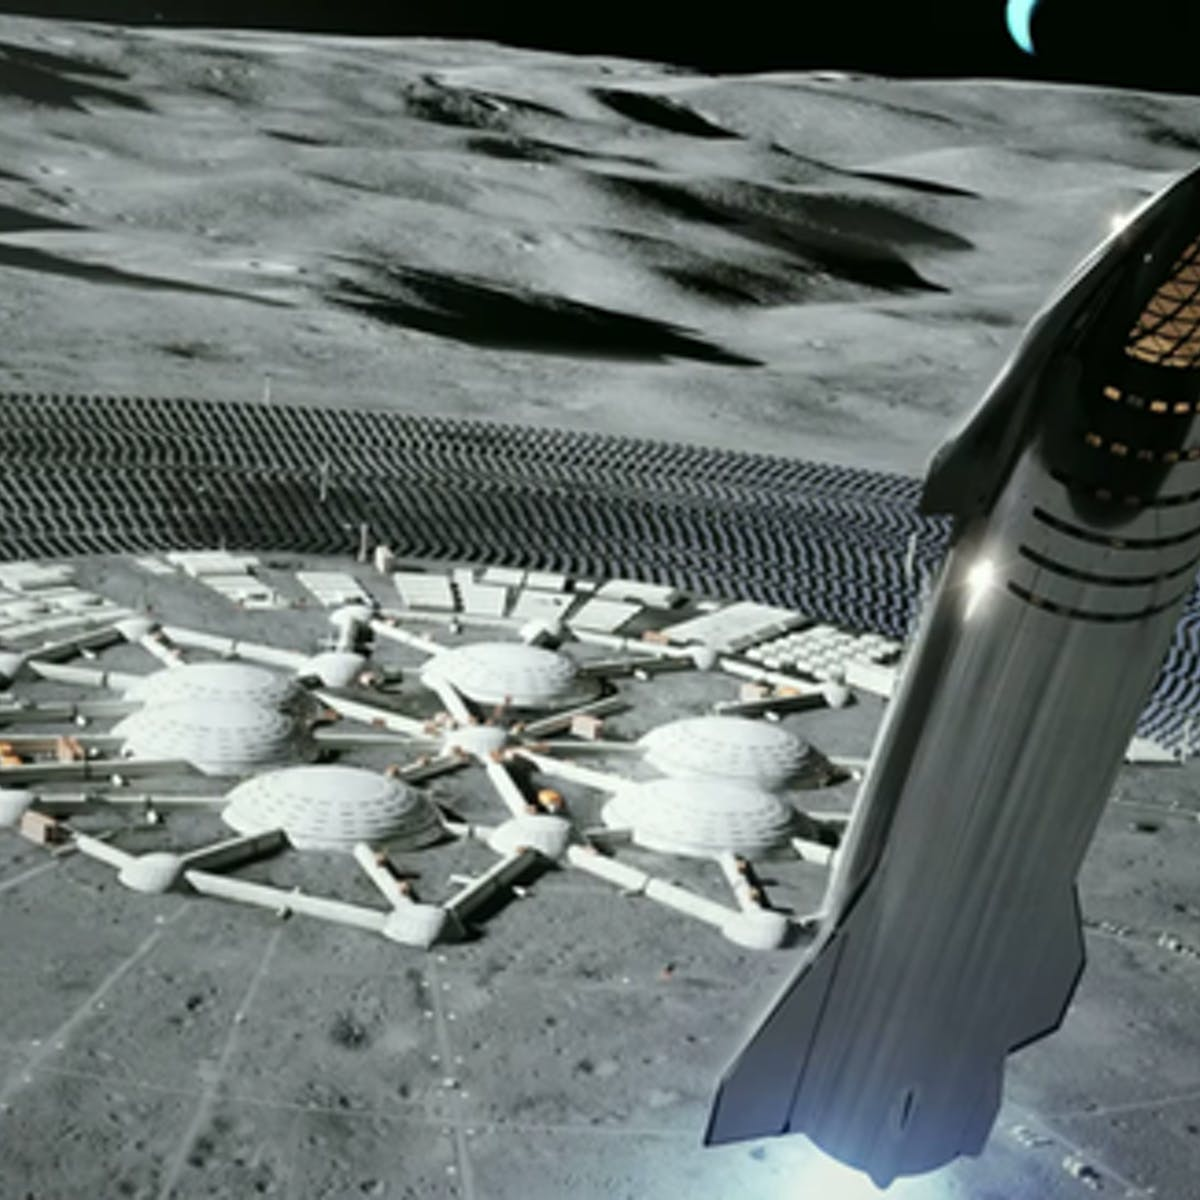 Musk Reads: New Starships are taking shape